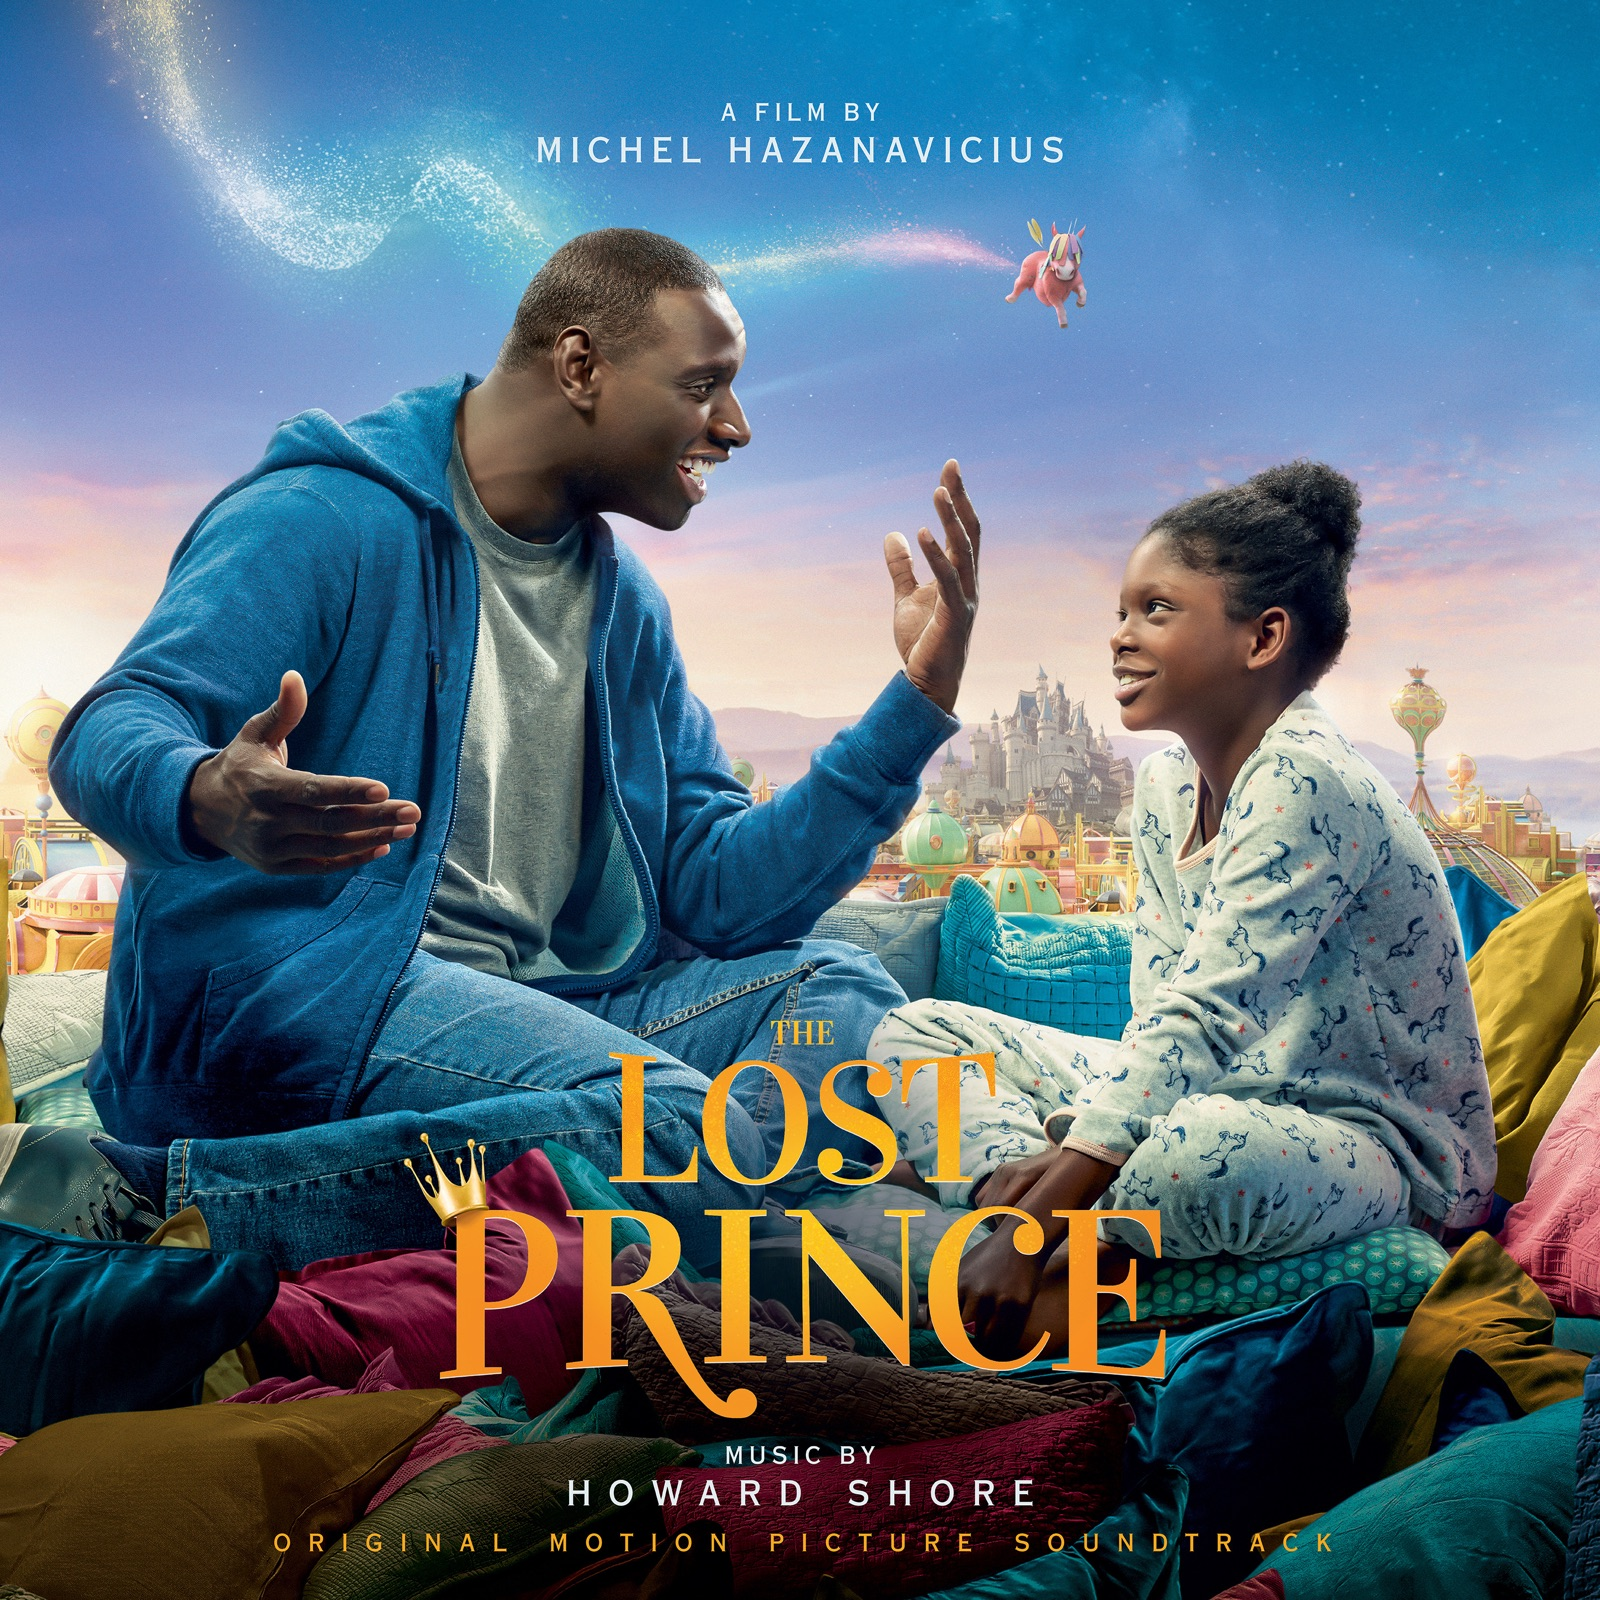 Howard Shore, Natalie Prass & Fantine (The Lost Prince (Original Motion Picture Soundtrack))